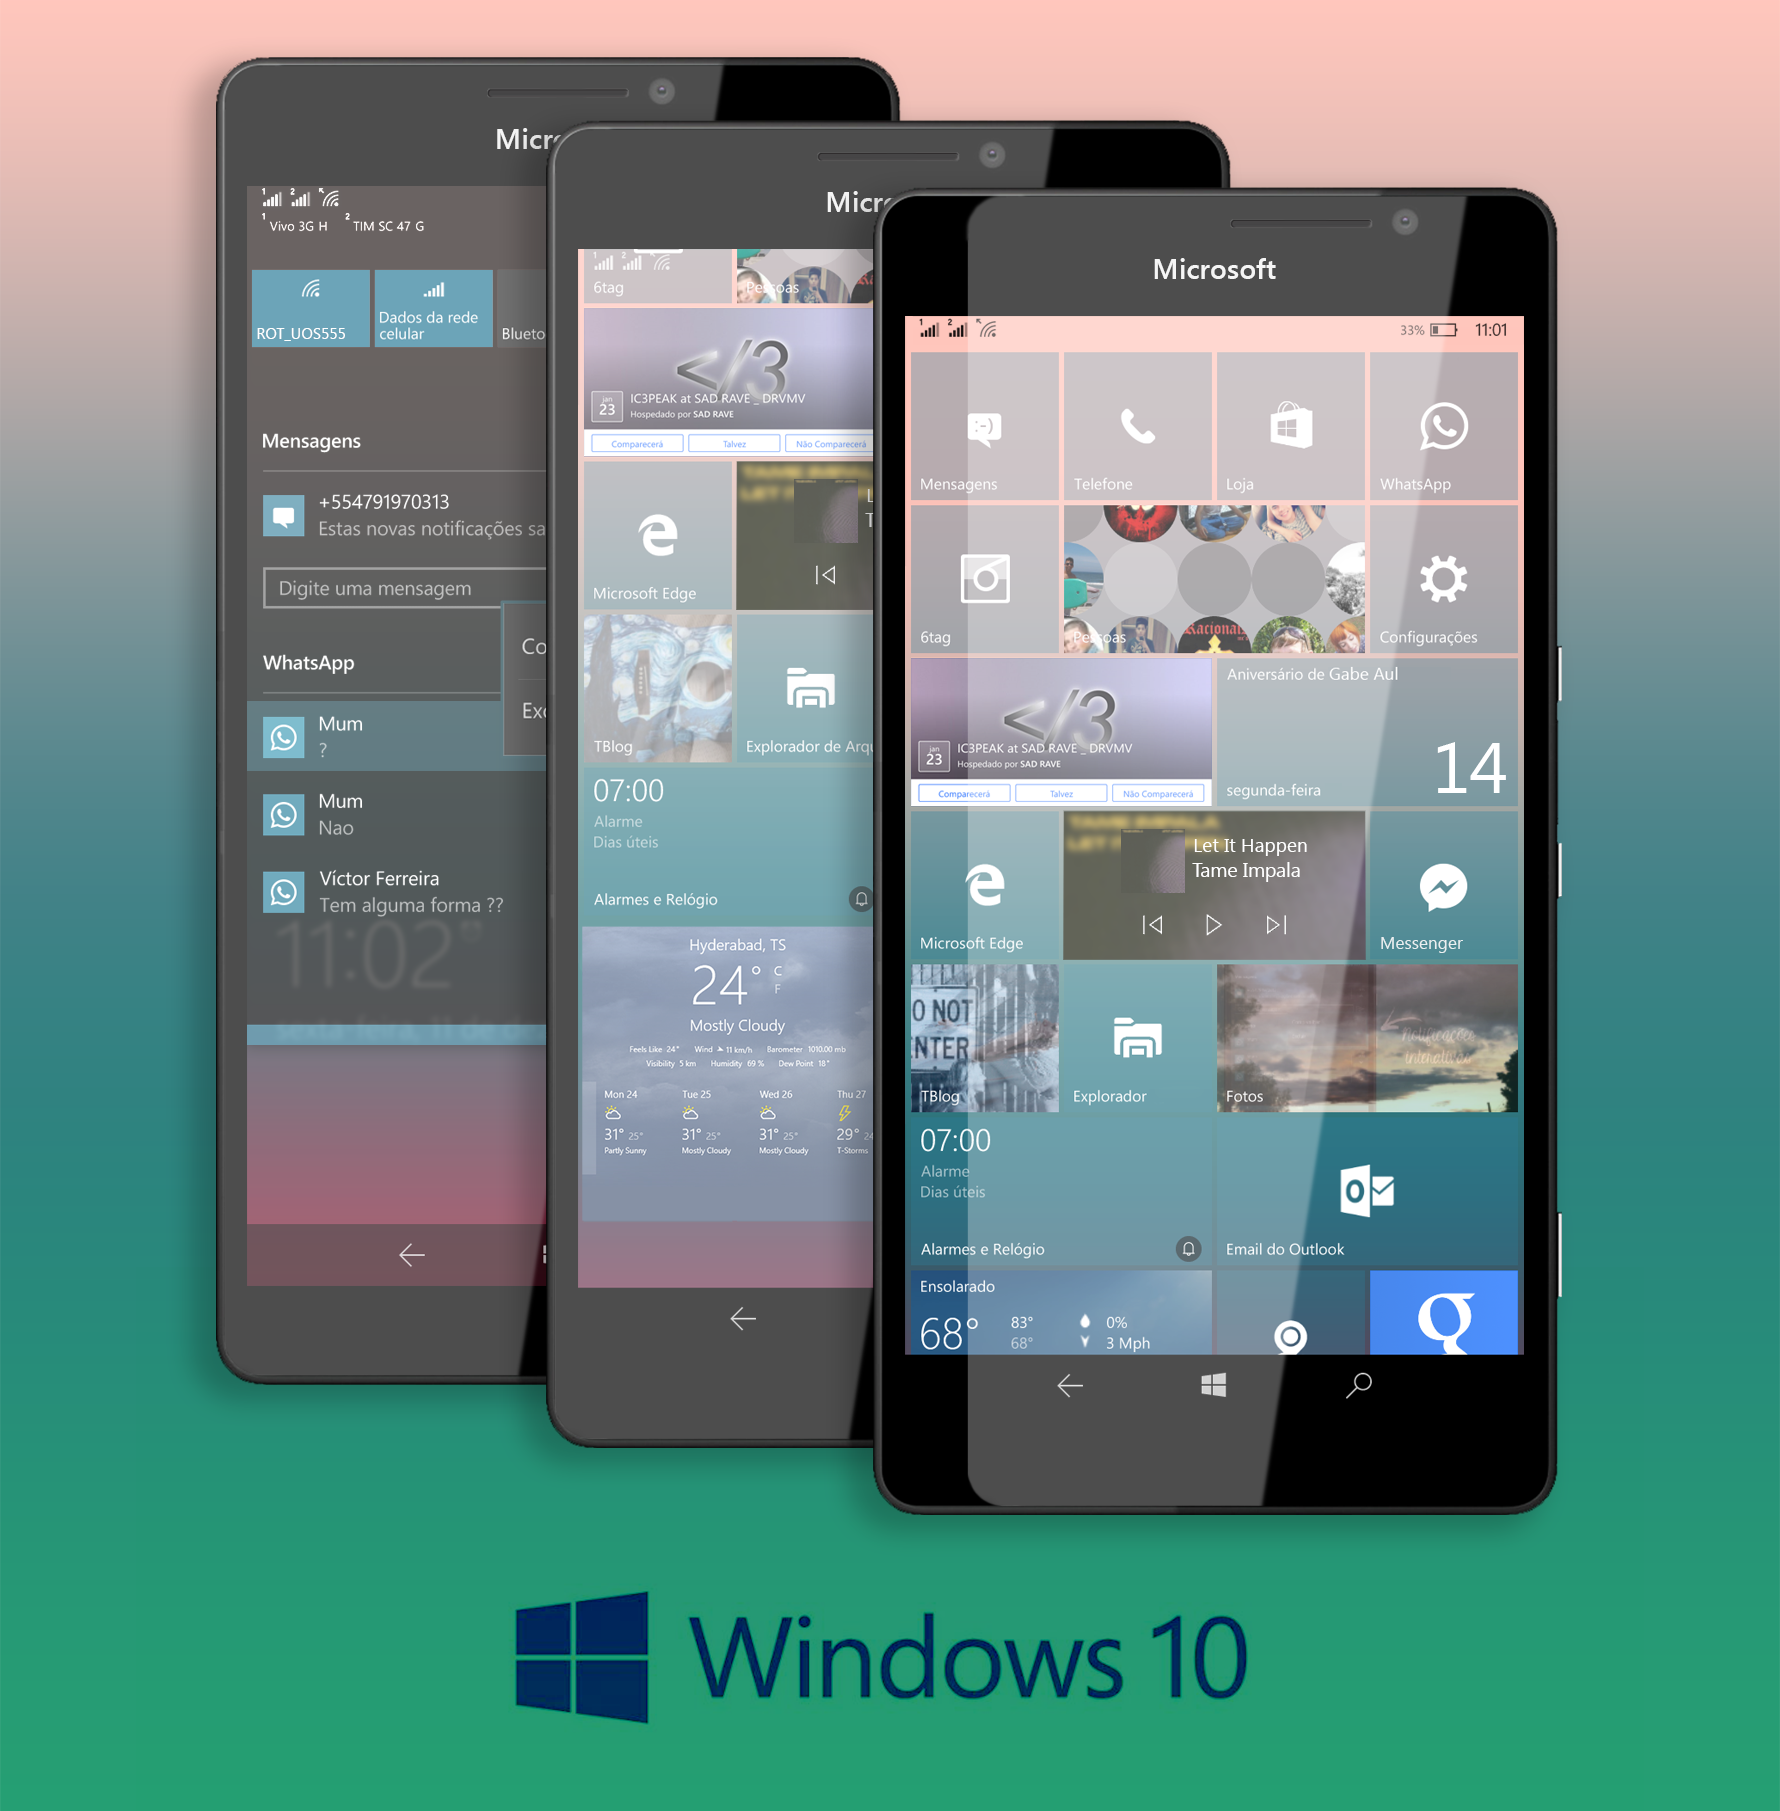 Windows 10 Mobile Concept New Features By AlexRDT On DeviantArt